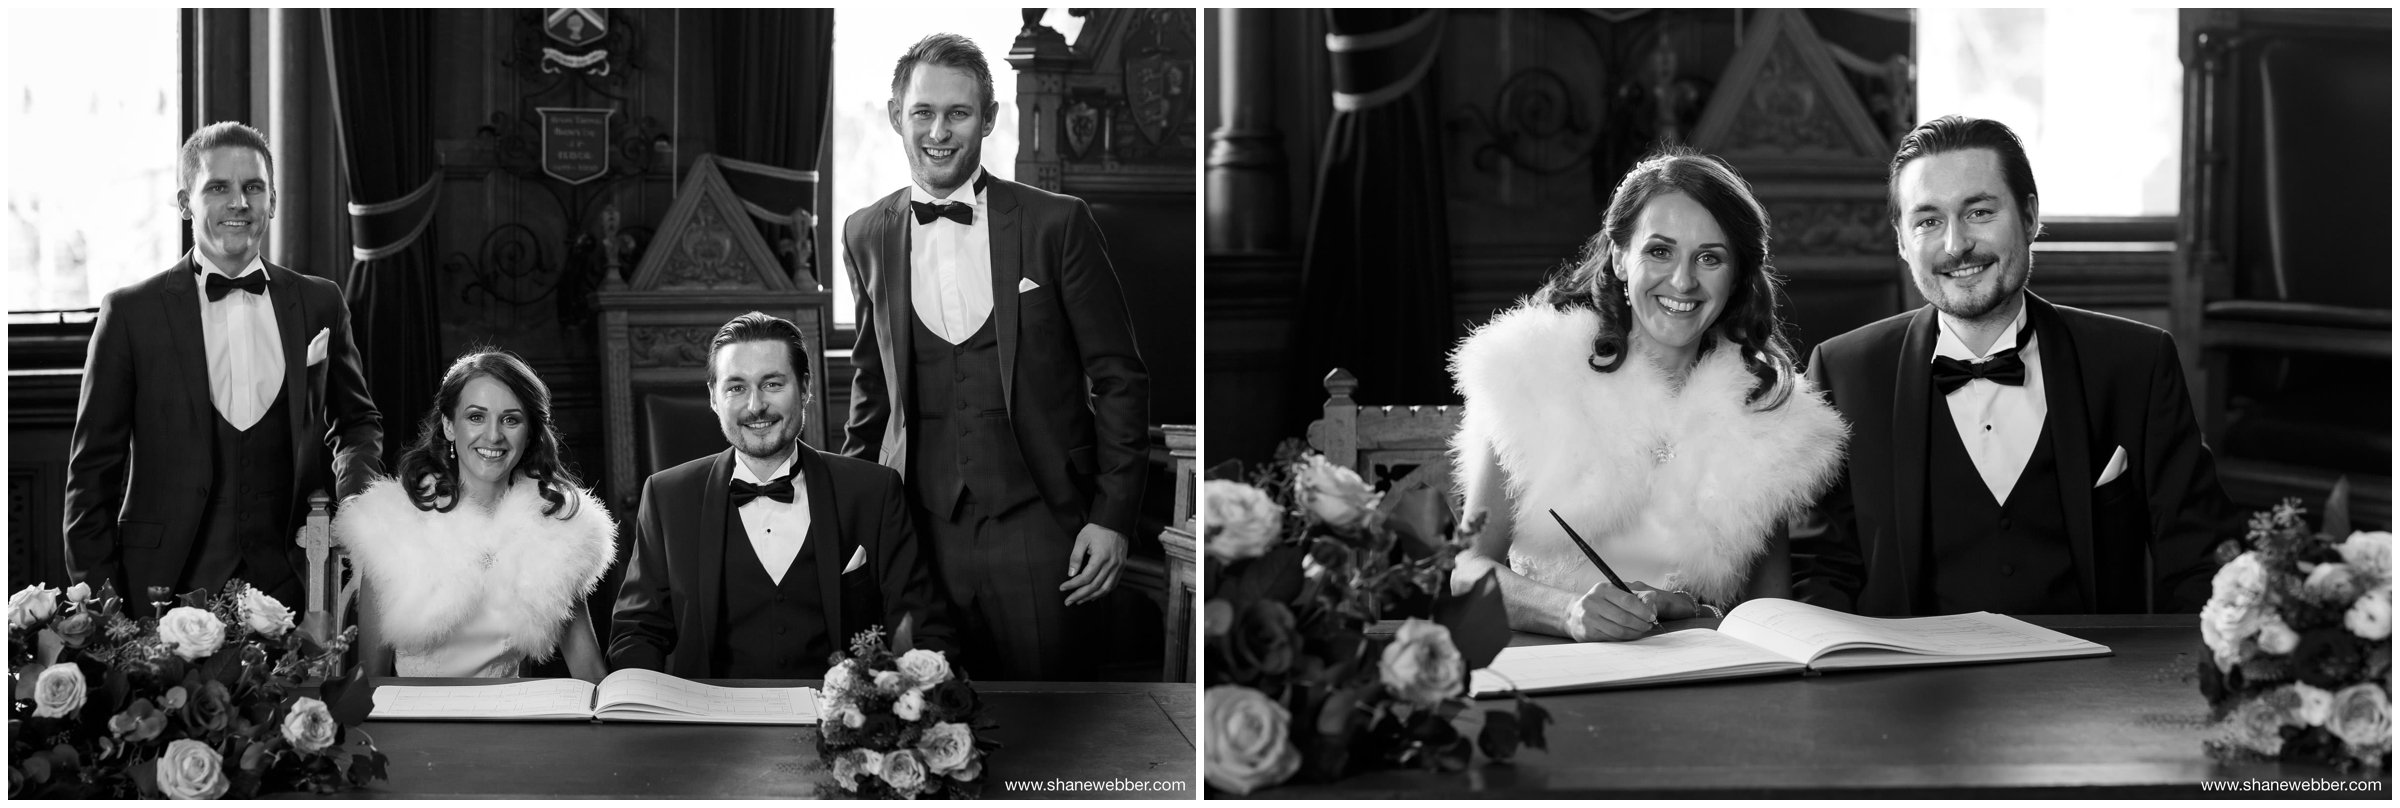 Luxury wedding photographs